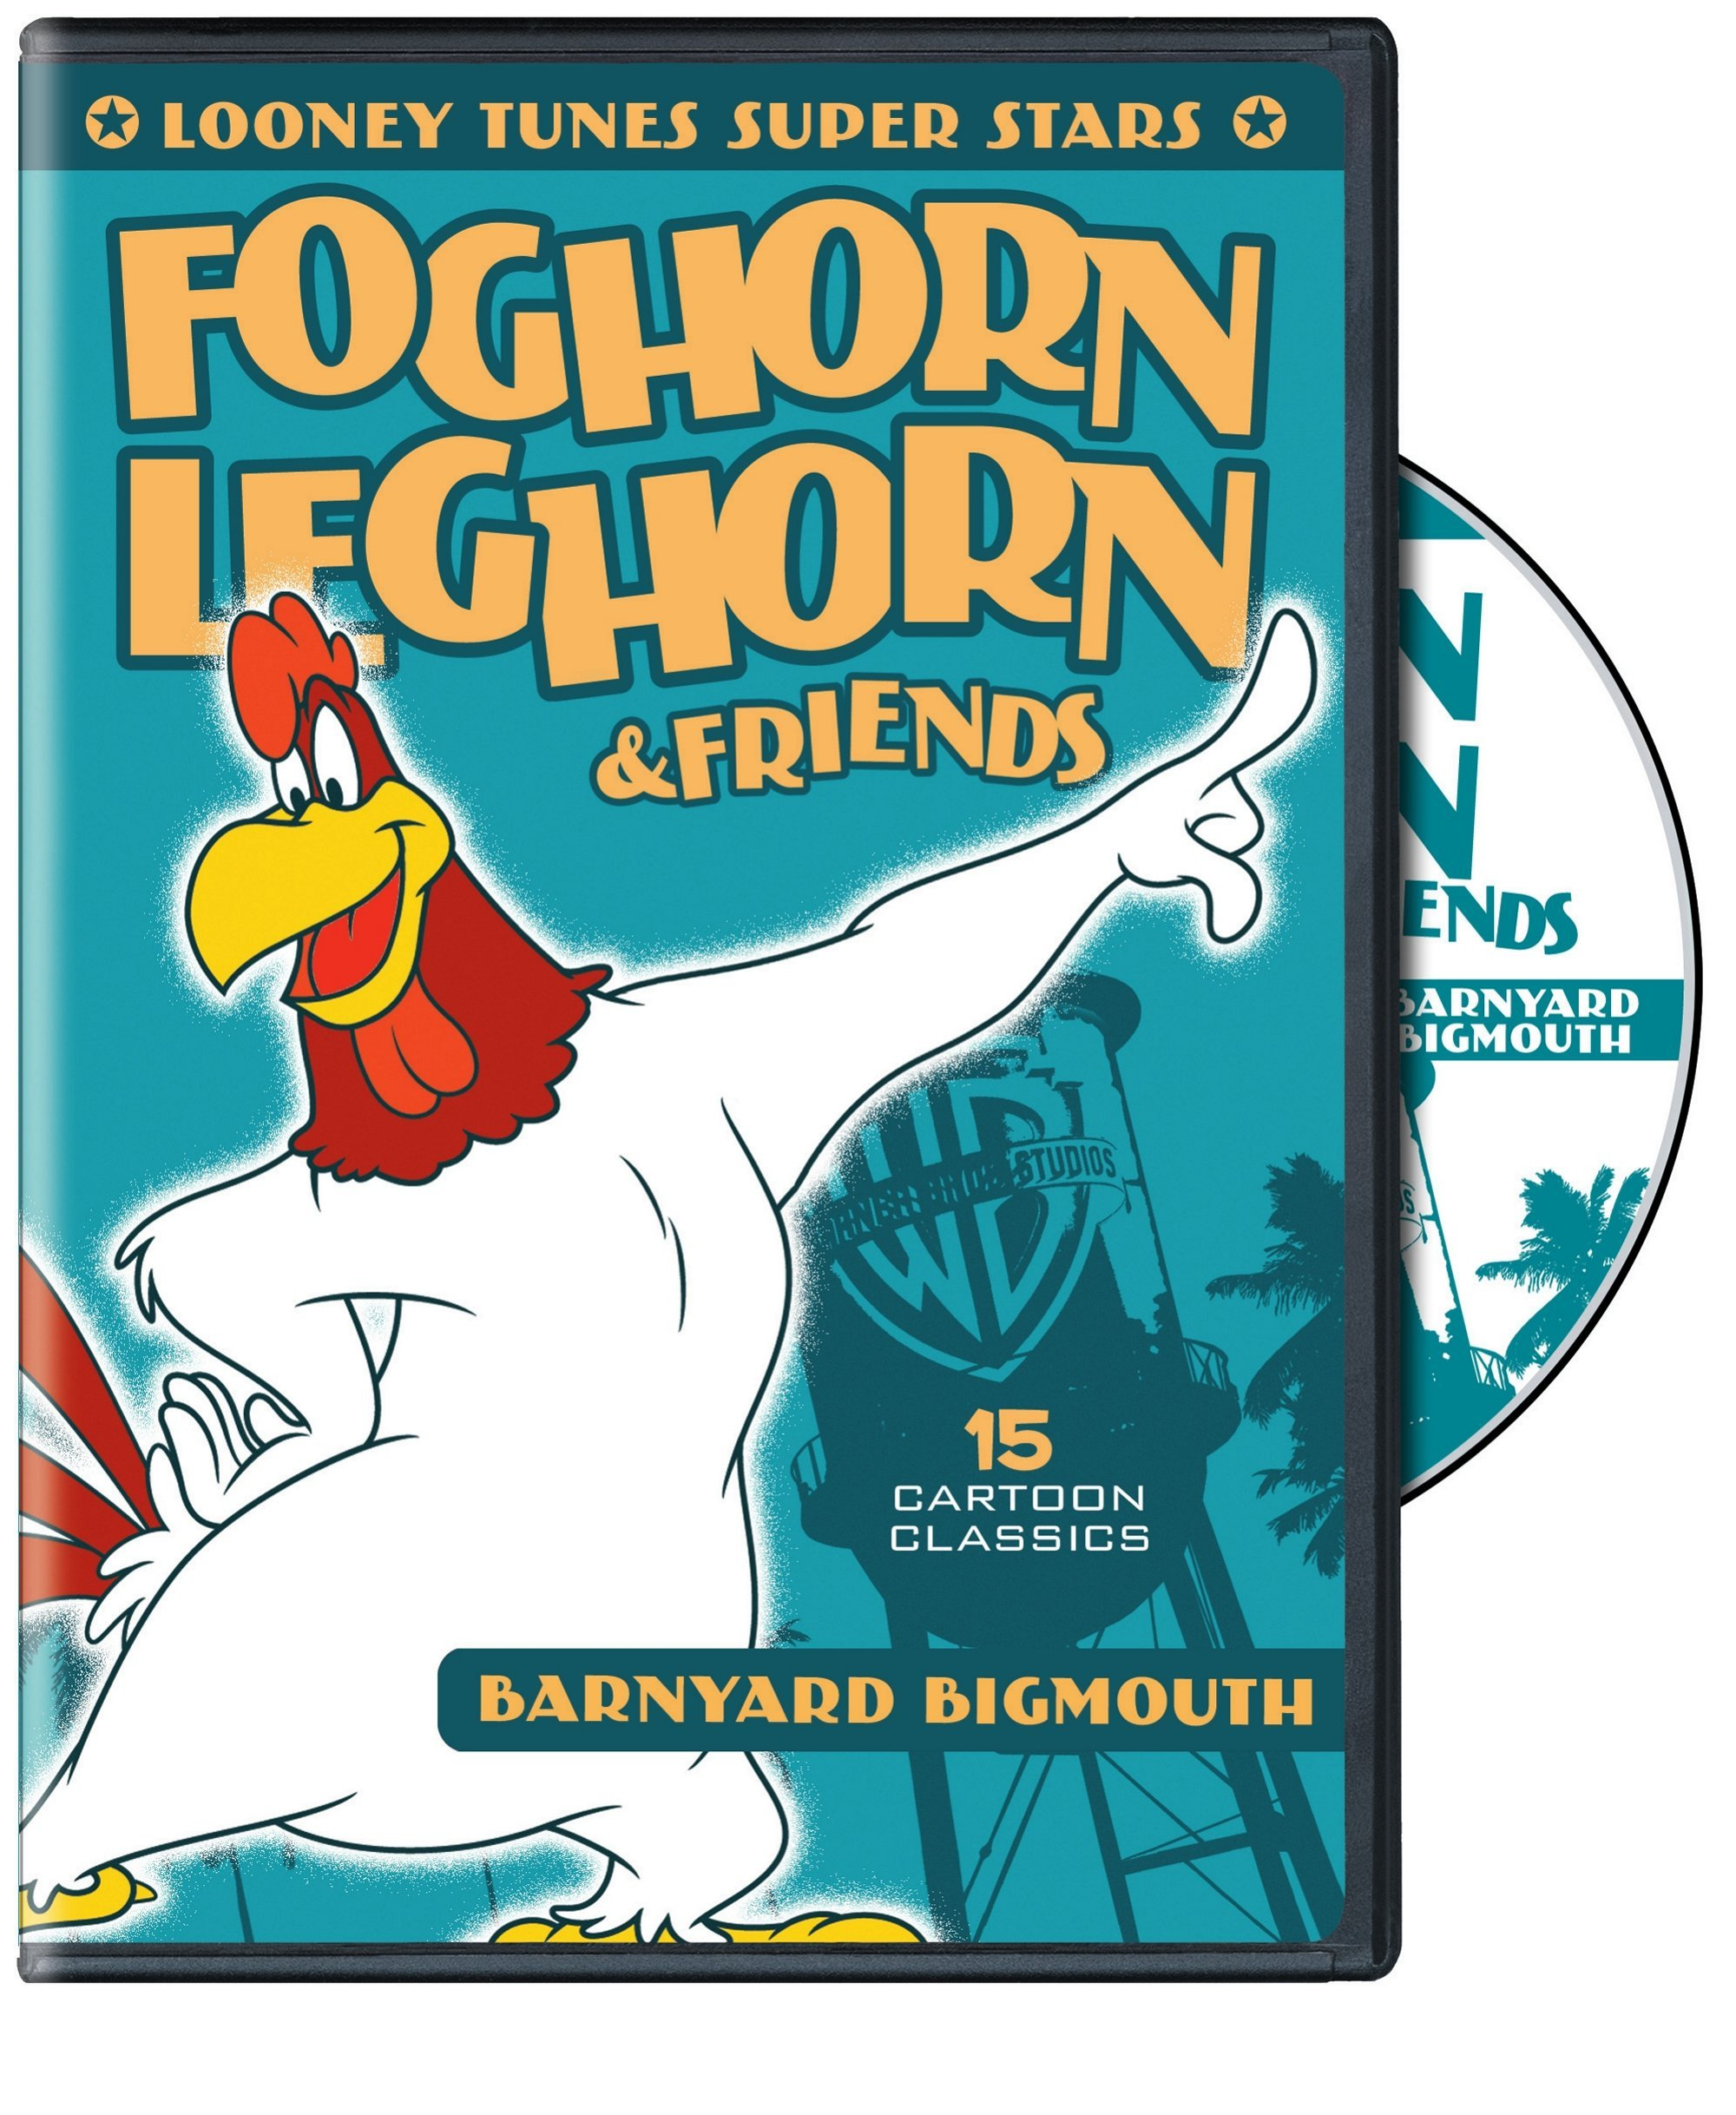 DVD : Looney Tunes Super Stars: Foghorn Leghorn & Friends: Barnyard Bigmouth (Remastered, Restored, Eco Amaray Case, Dolby)